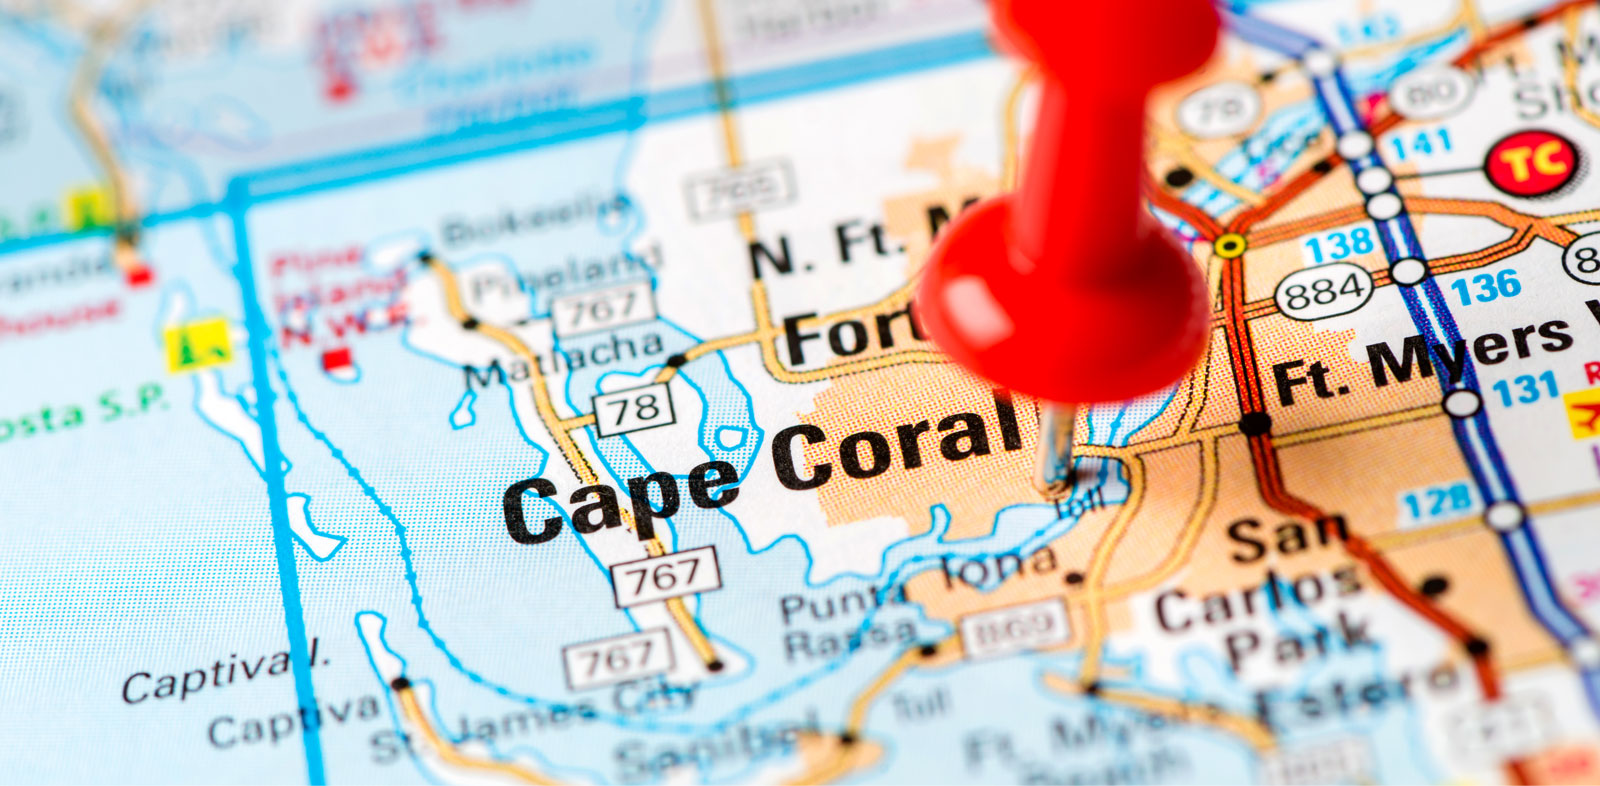 Map view of Cape Coral with Pin